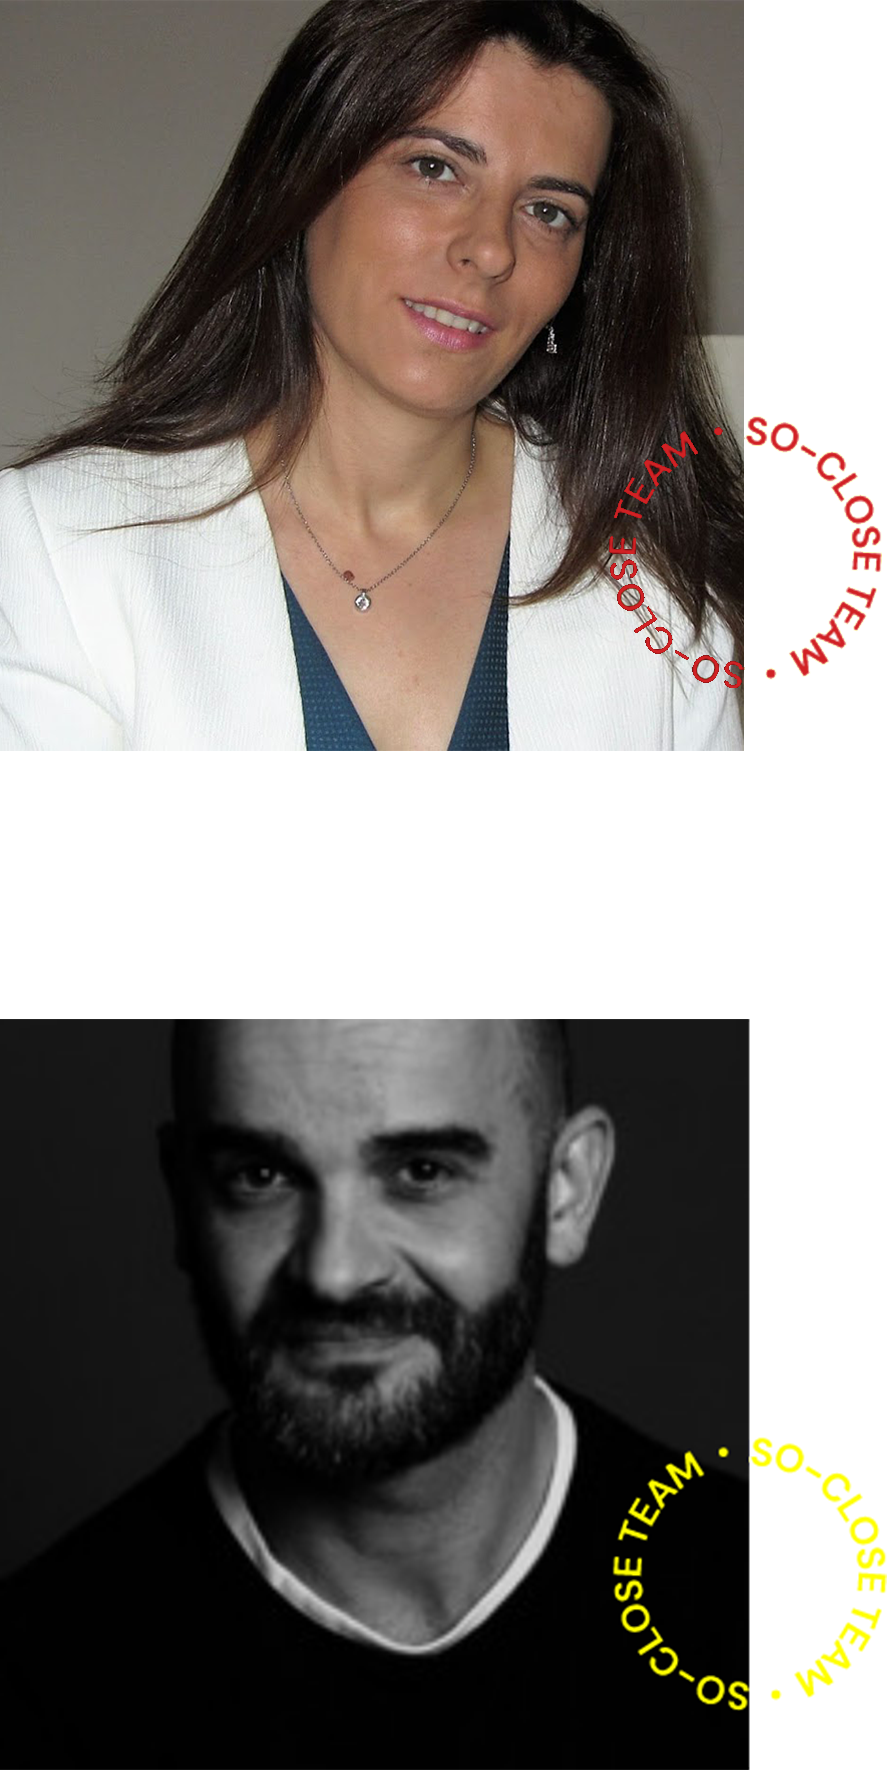 Leader of the project: Ainhoa Flecha & Javier Rodrigo